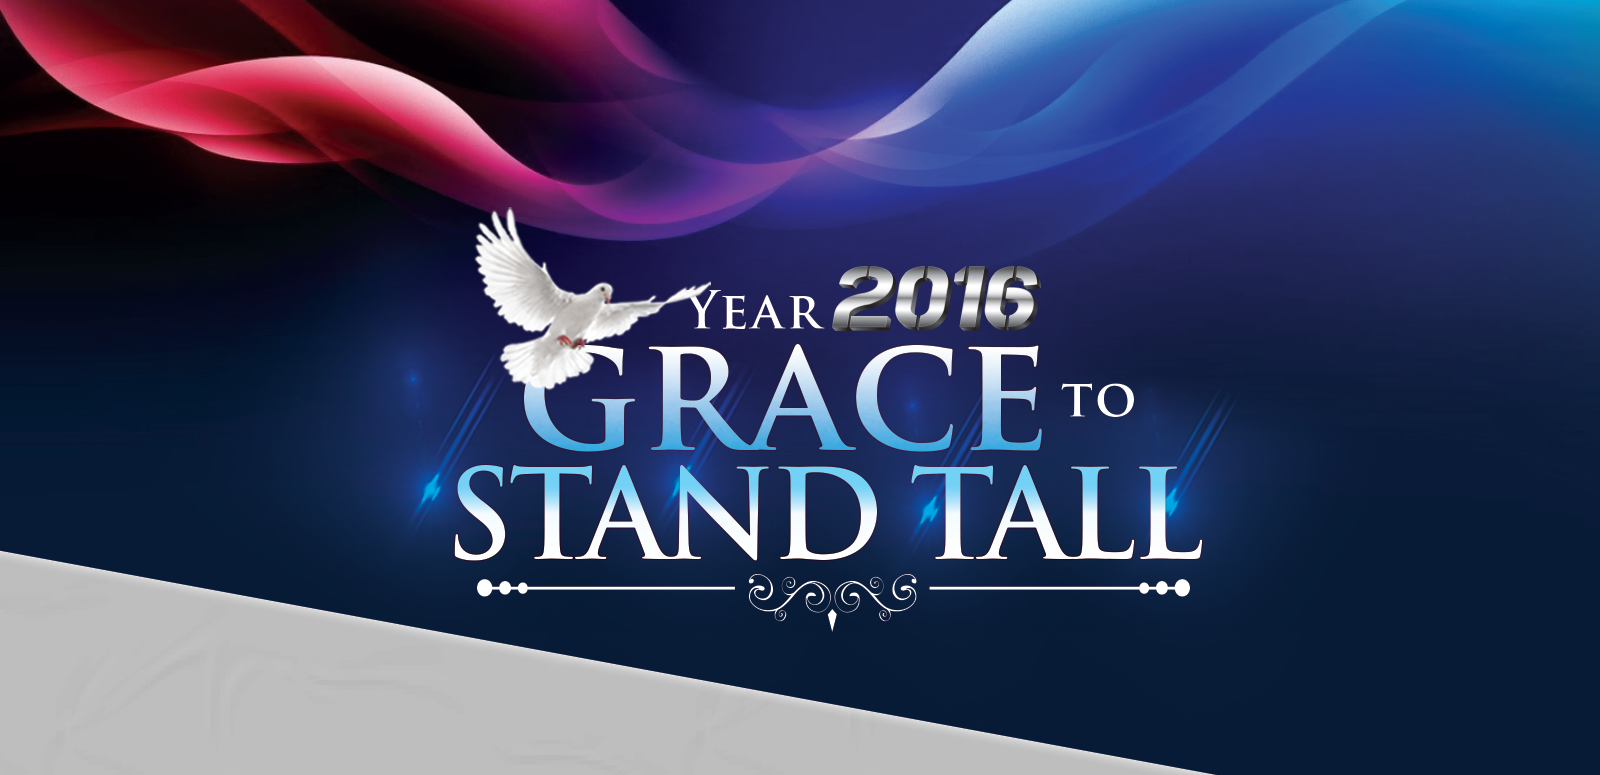 year-2016-Grace-to-stand-tall-web-banner-01